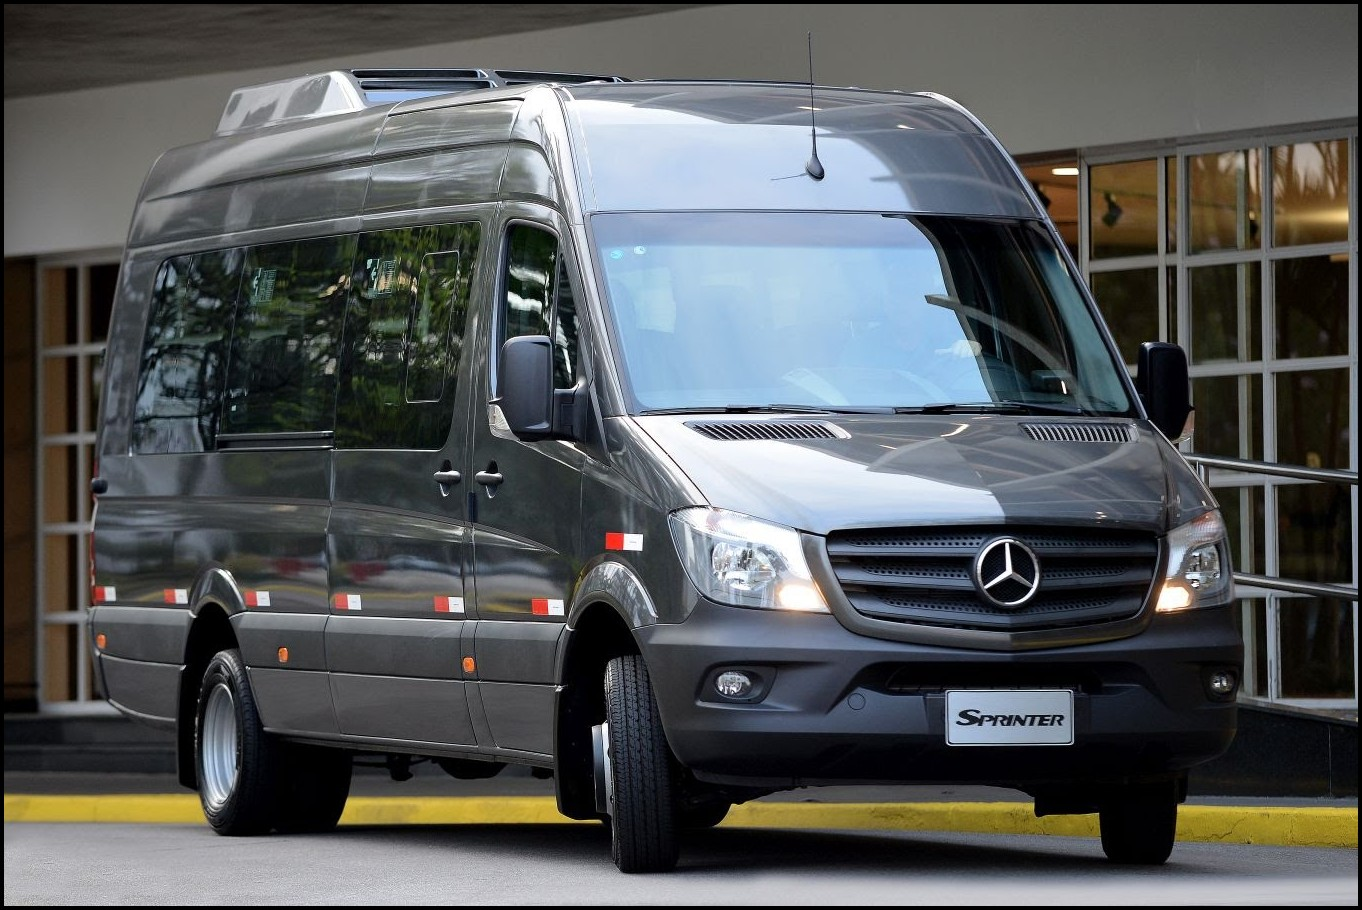 2018 mercedes sprinter rv passenger van reviews. Black Bedroom Furniture Sets. Home Design Ideas